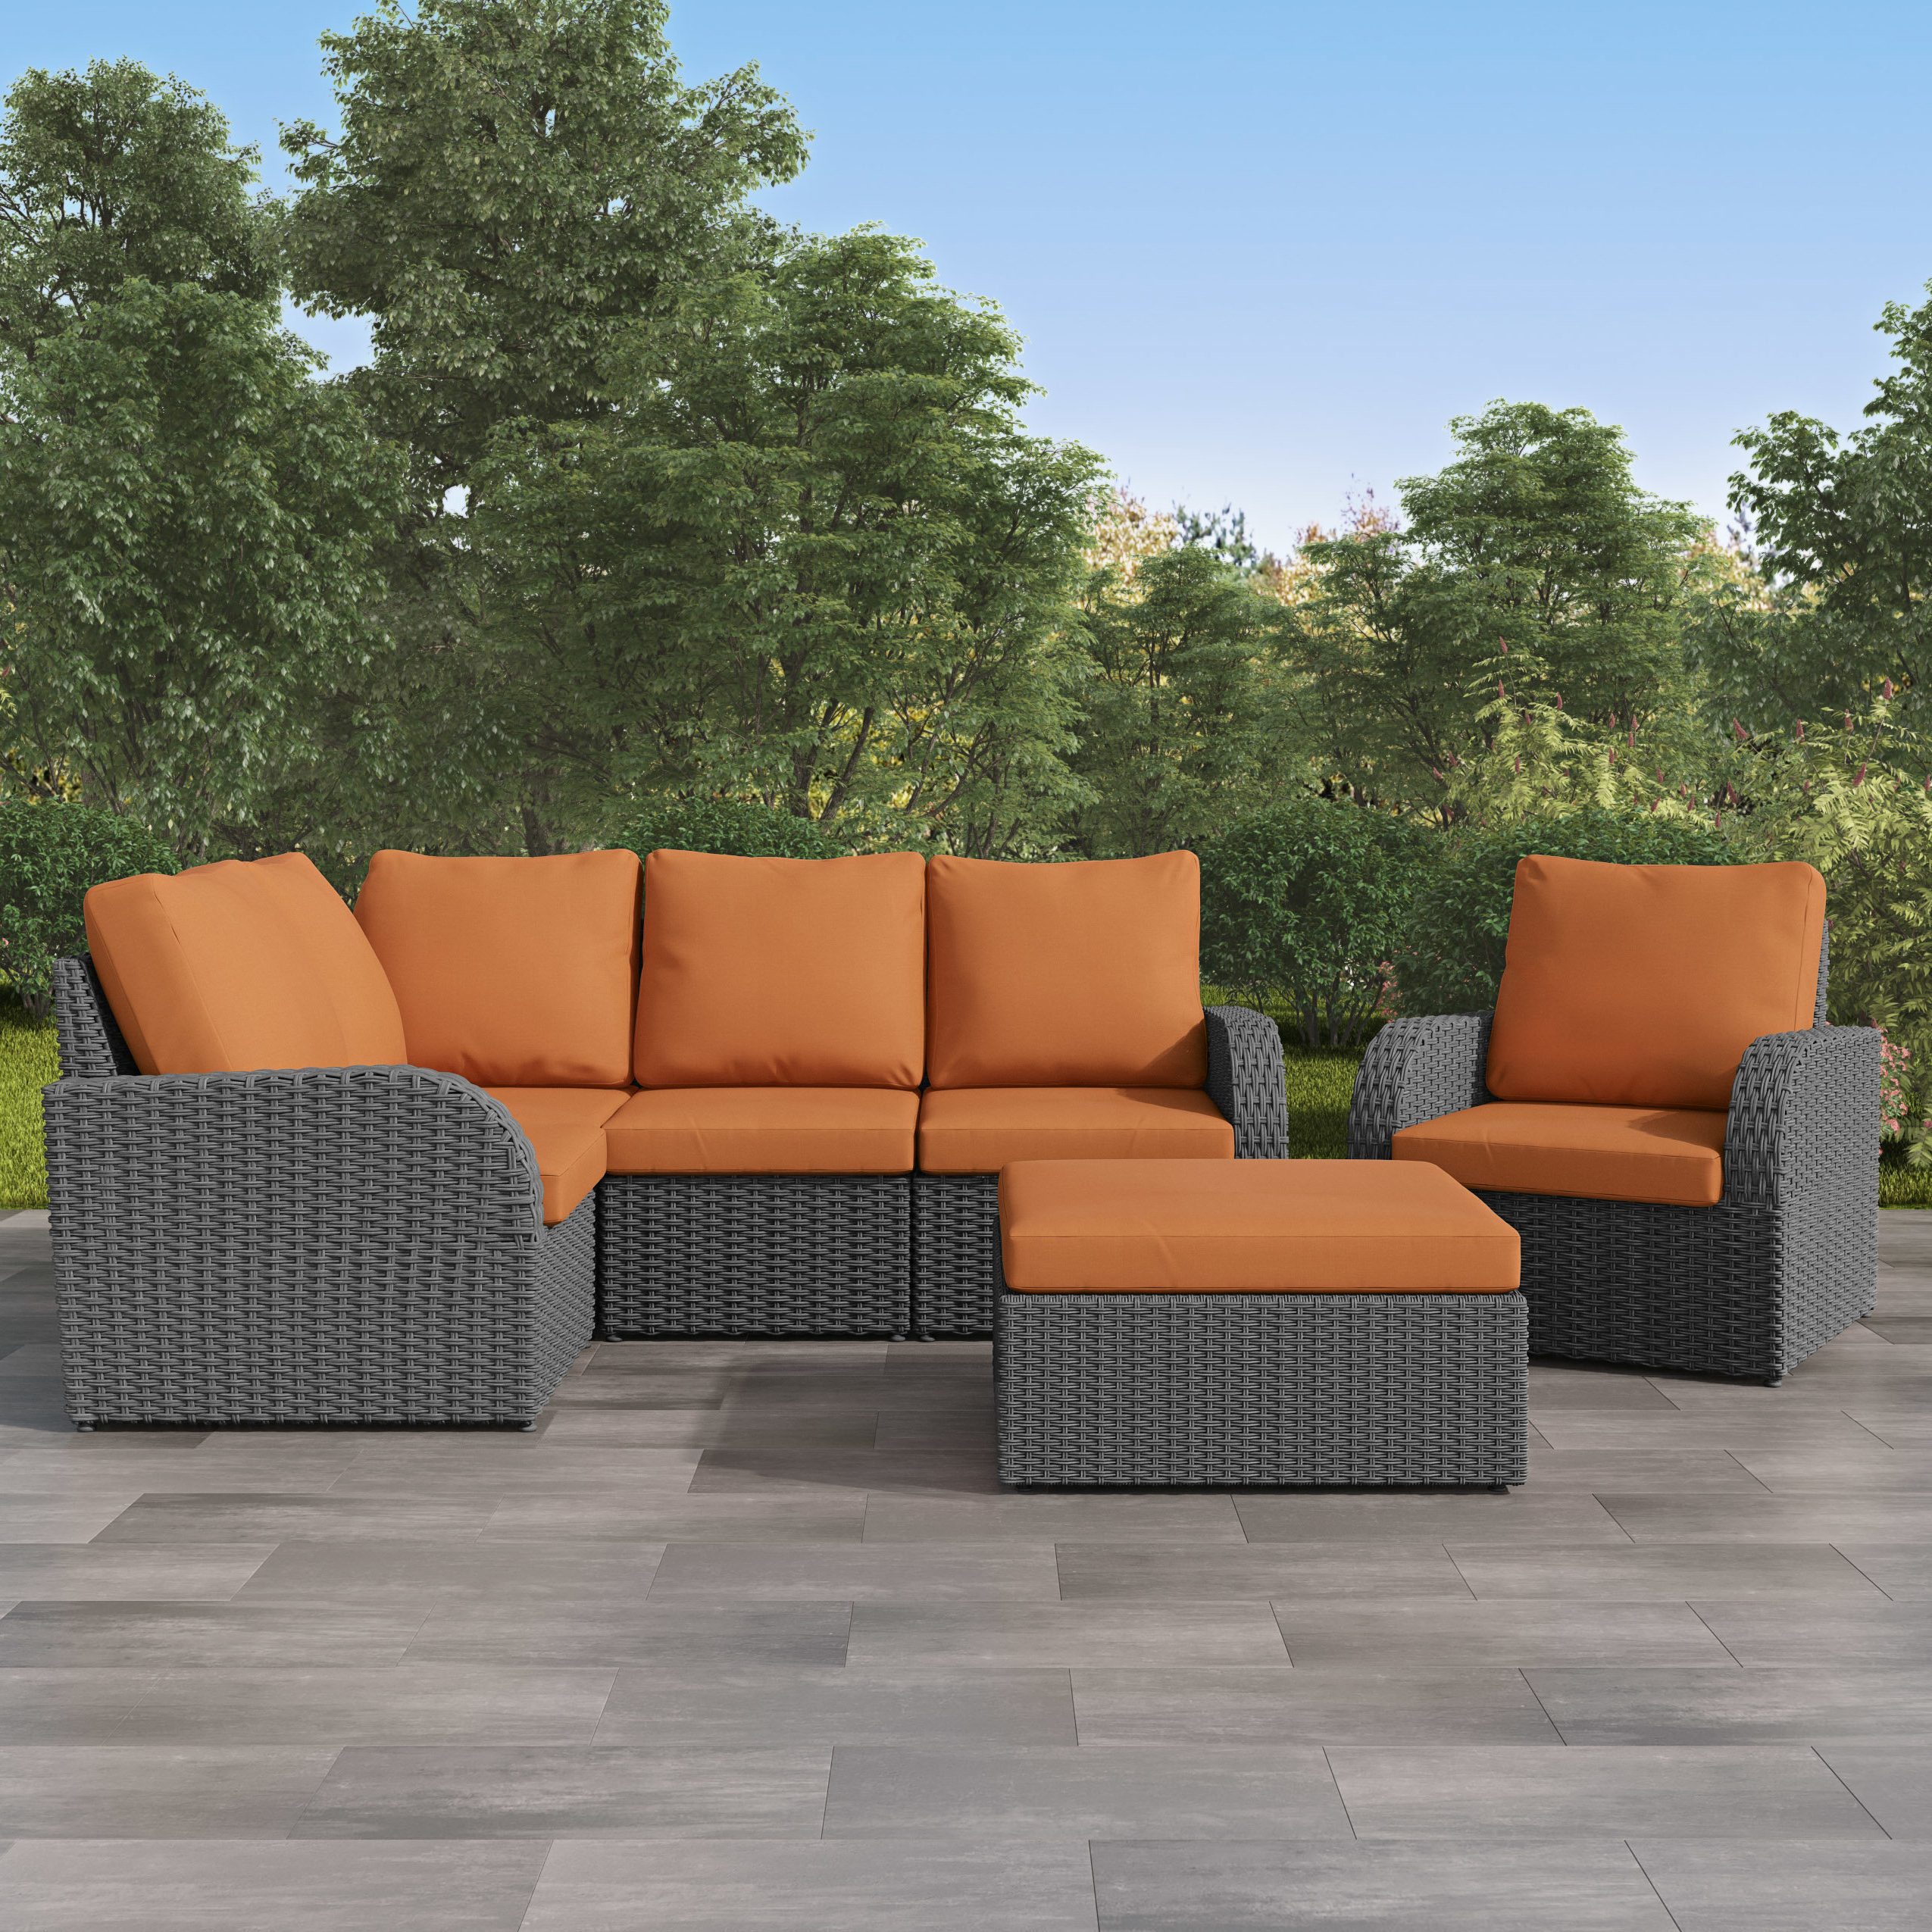 Well Liked Killingworth Patio Sectional With Cushions With Regard To Jamarion 4 Piece Sectionals With Sunbrella Cushions (View 19 of 20)